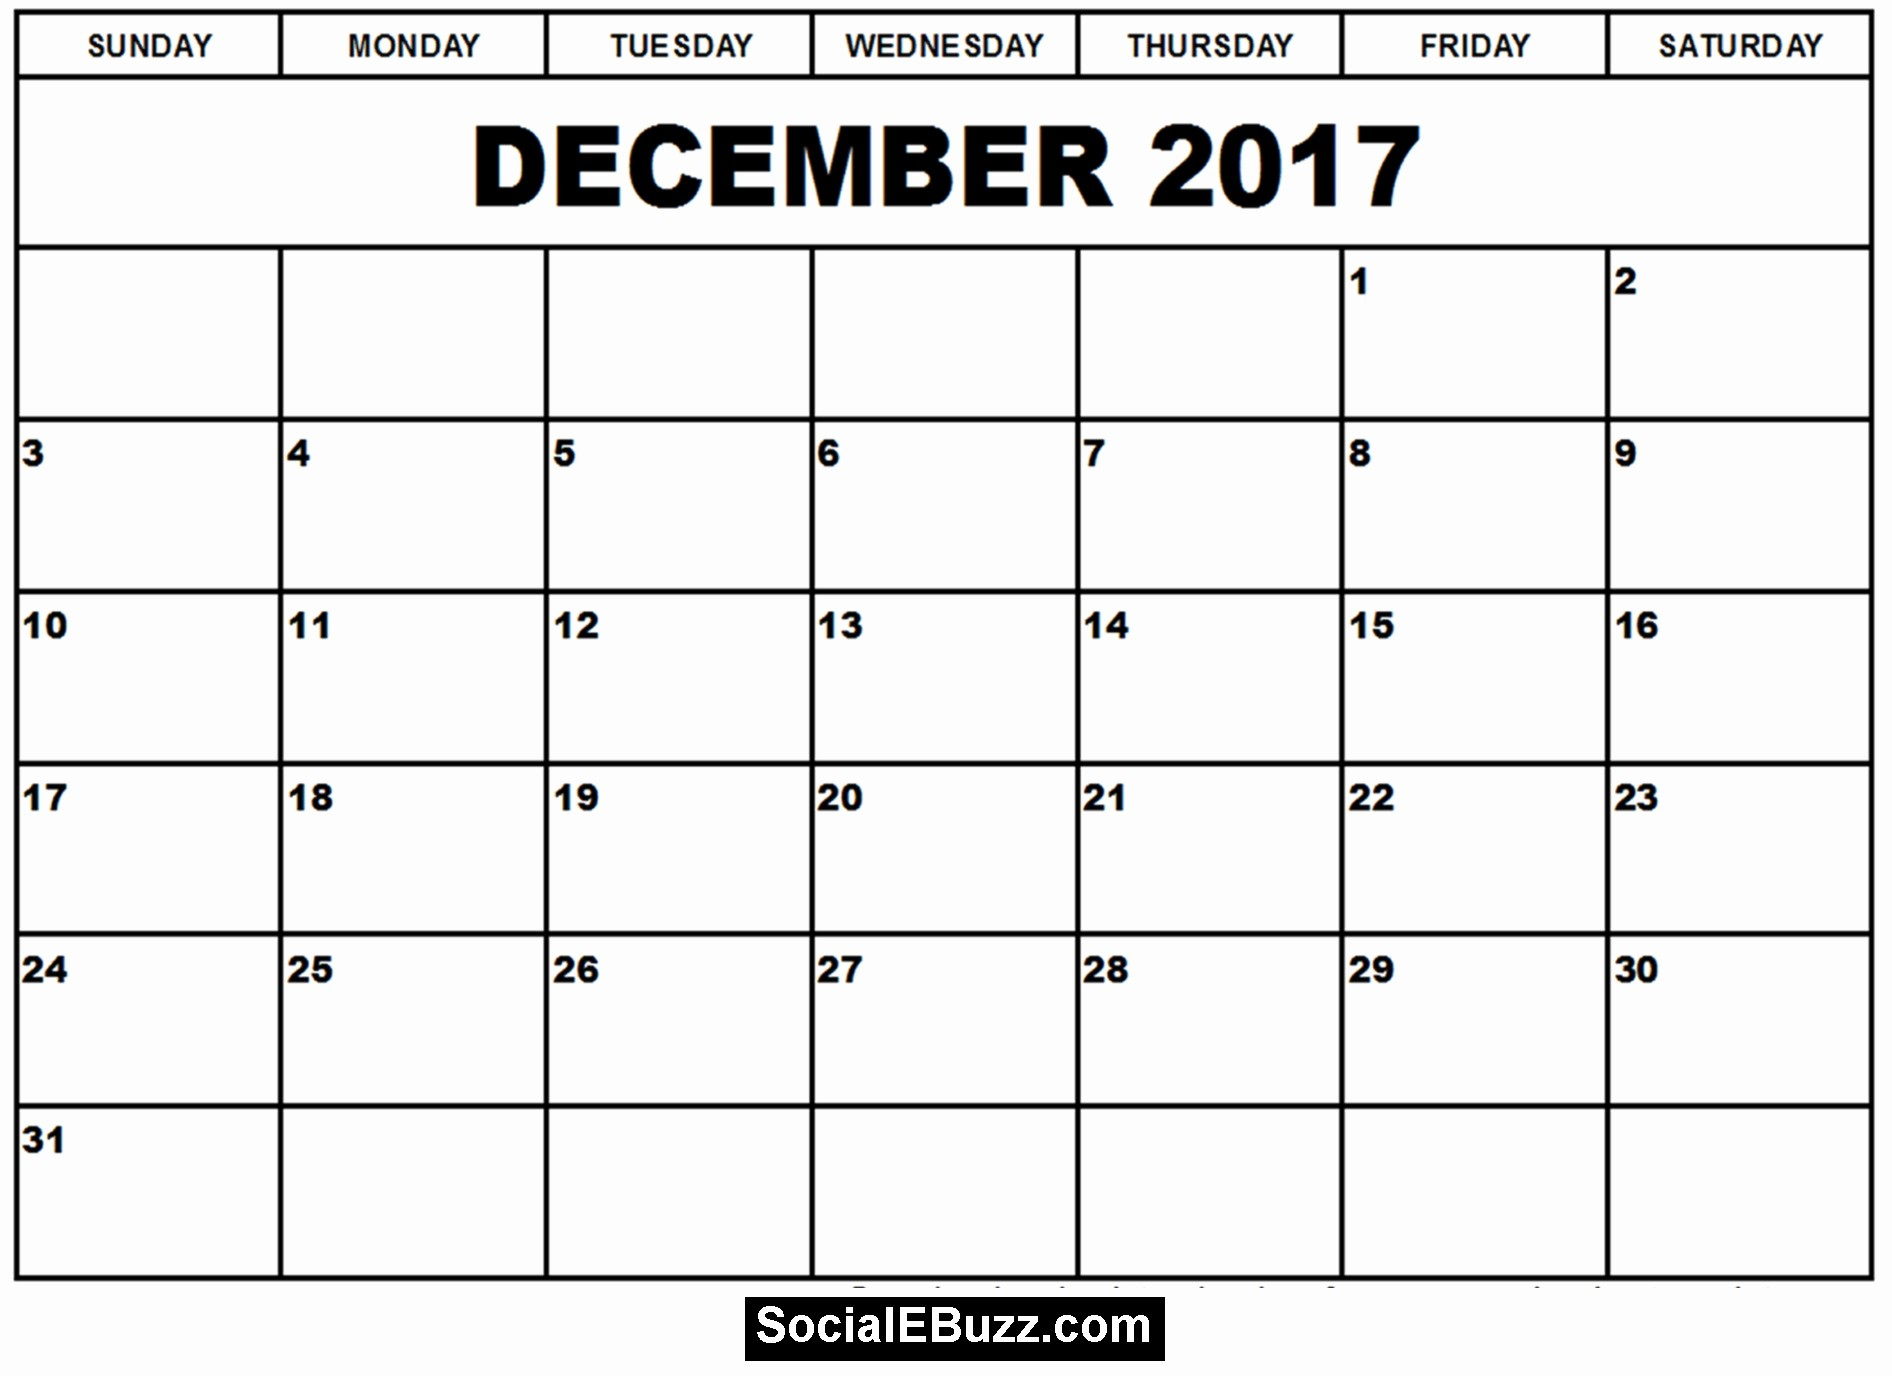 December 2017 Calendar Template Word New December 2017 Calendar Template Word Cheatervz